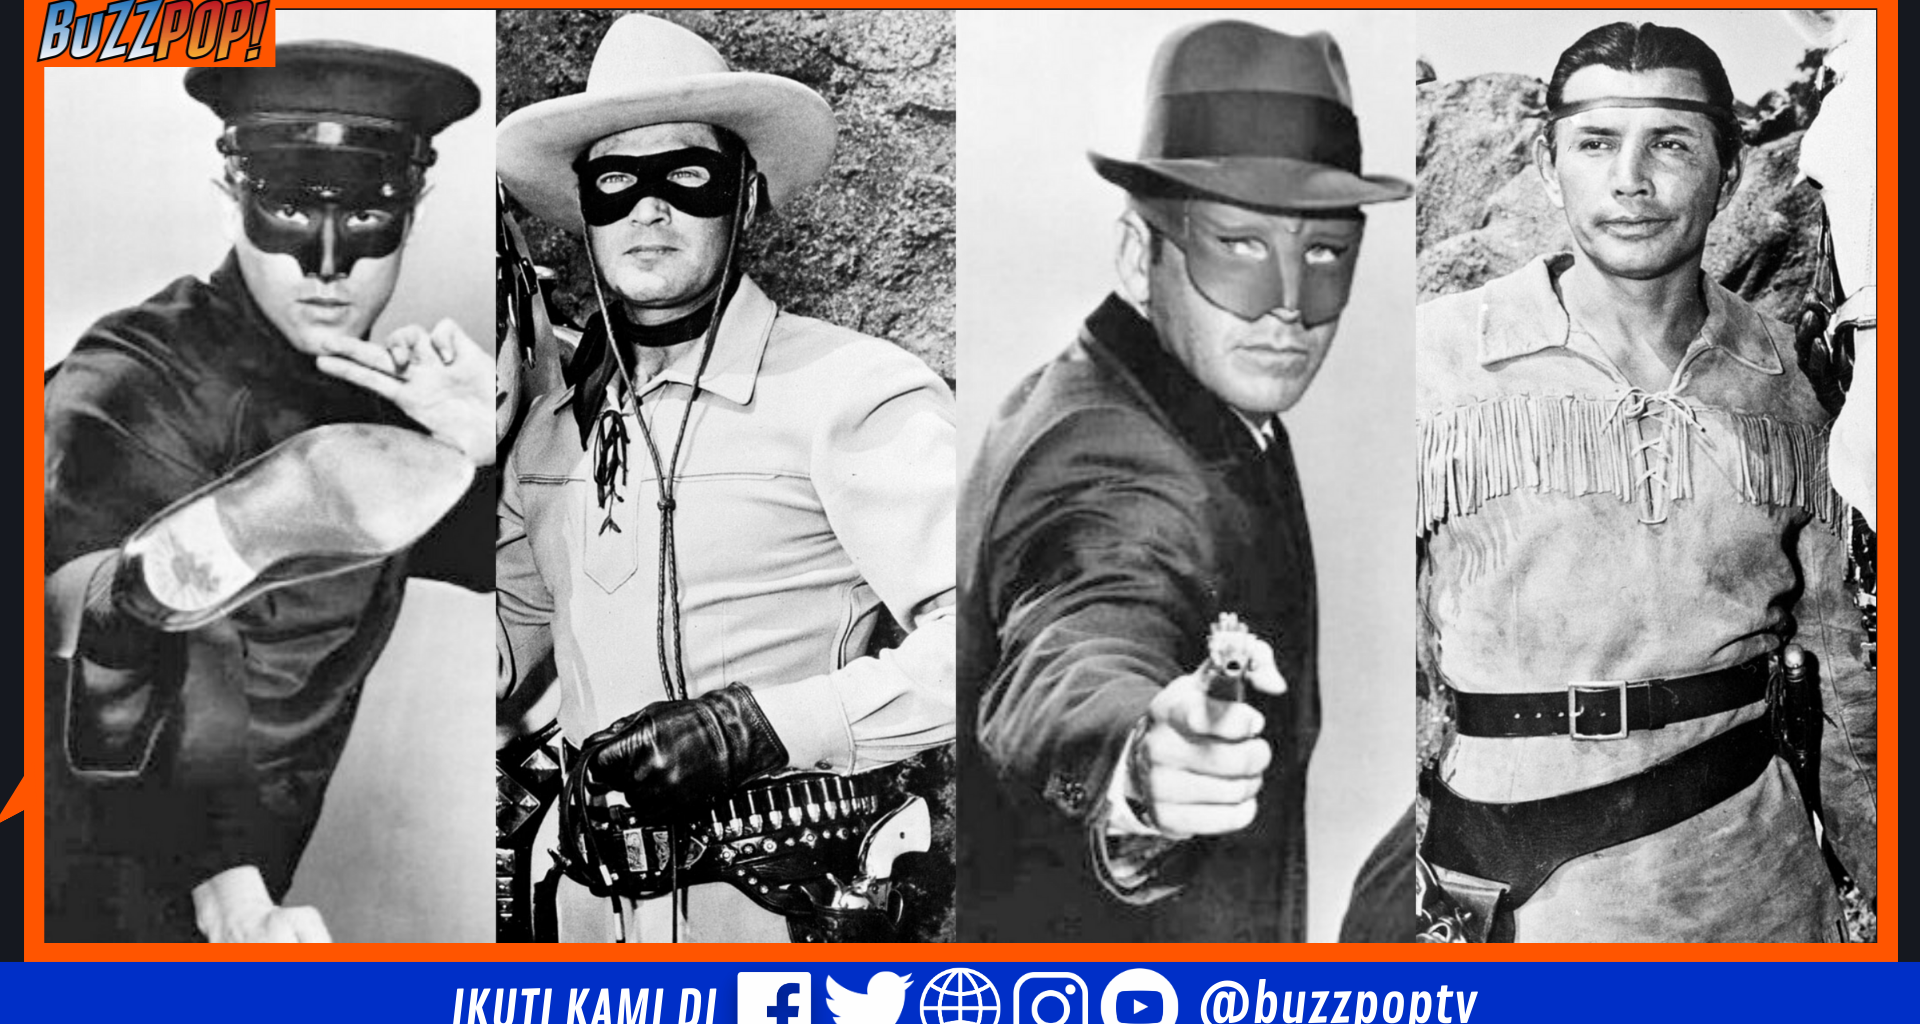 The Lone Ranger The Green Hornet connection